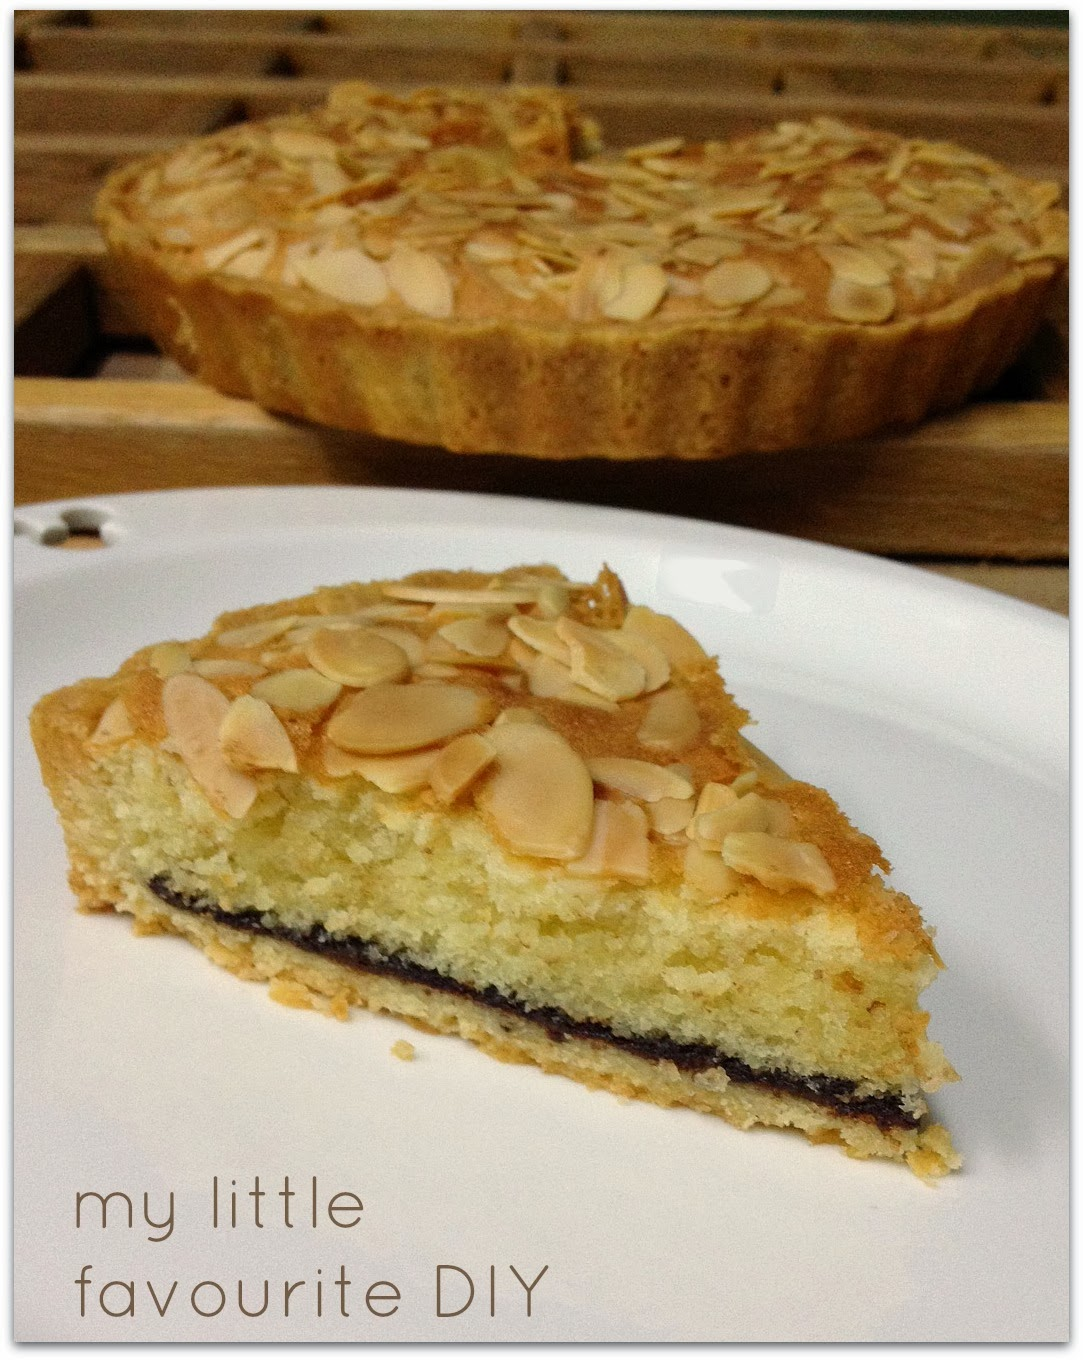 ... caramel almond tart raspberry almond lattice tart italian almond tart